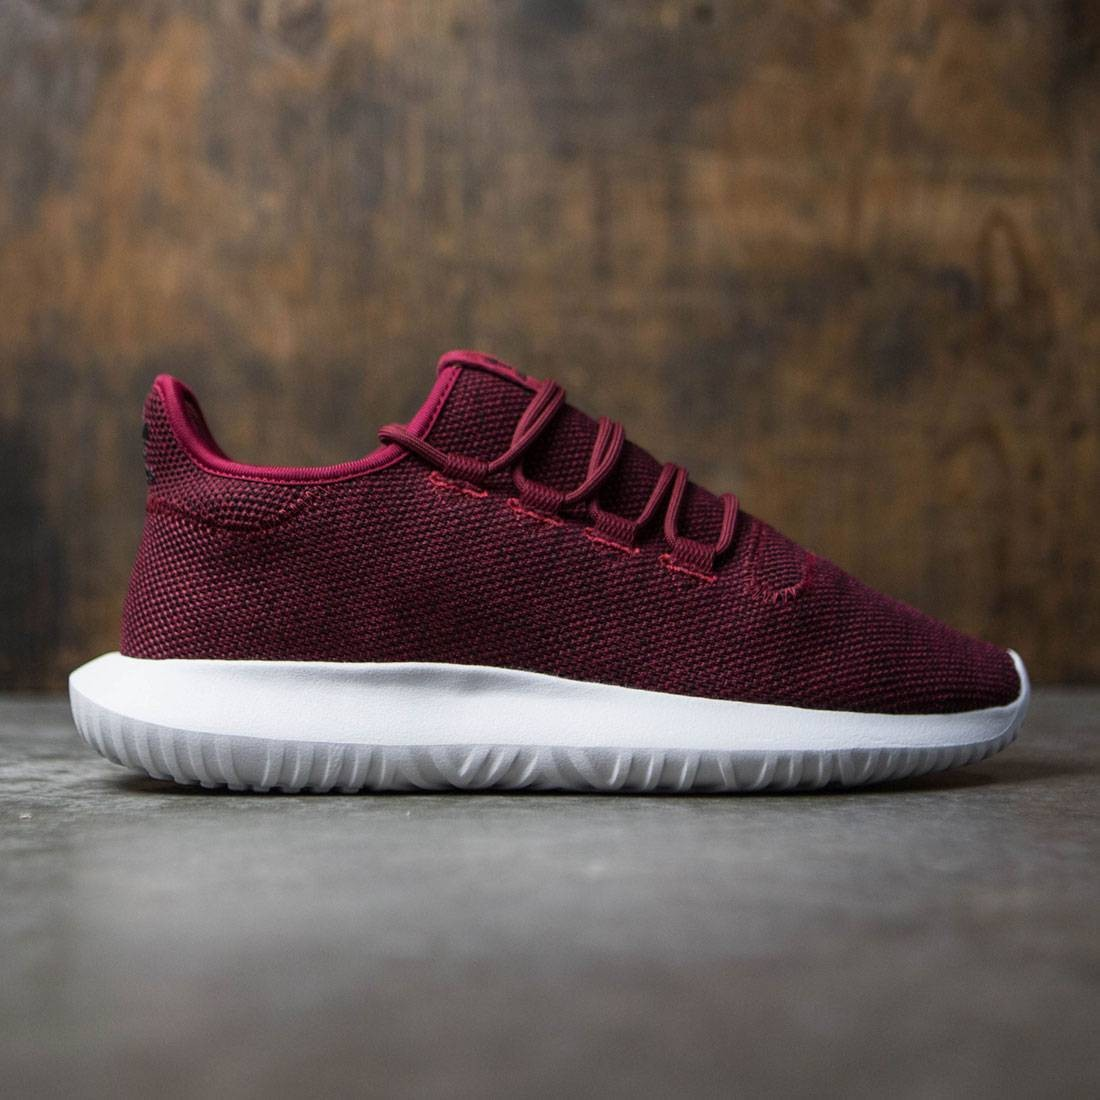 5b0061da4be7 Adidas Men Tubular Shadow burgundy core black footwear white